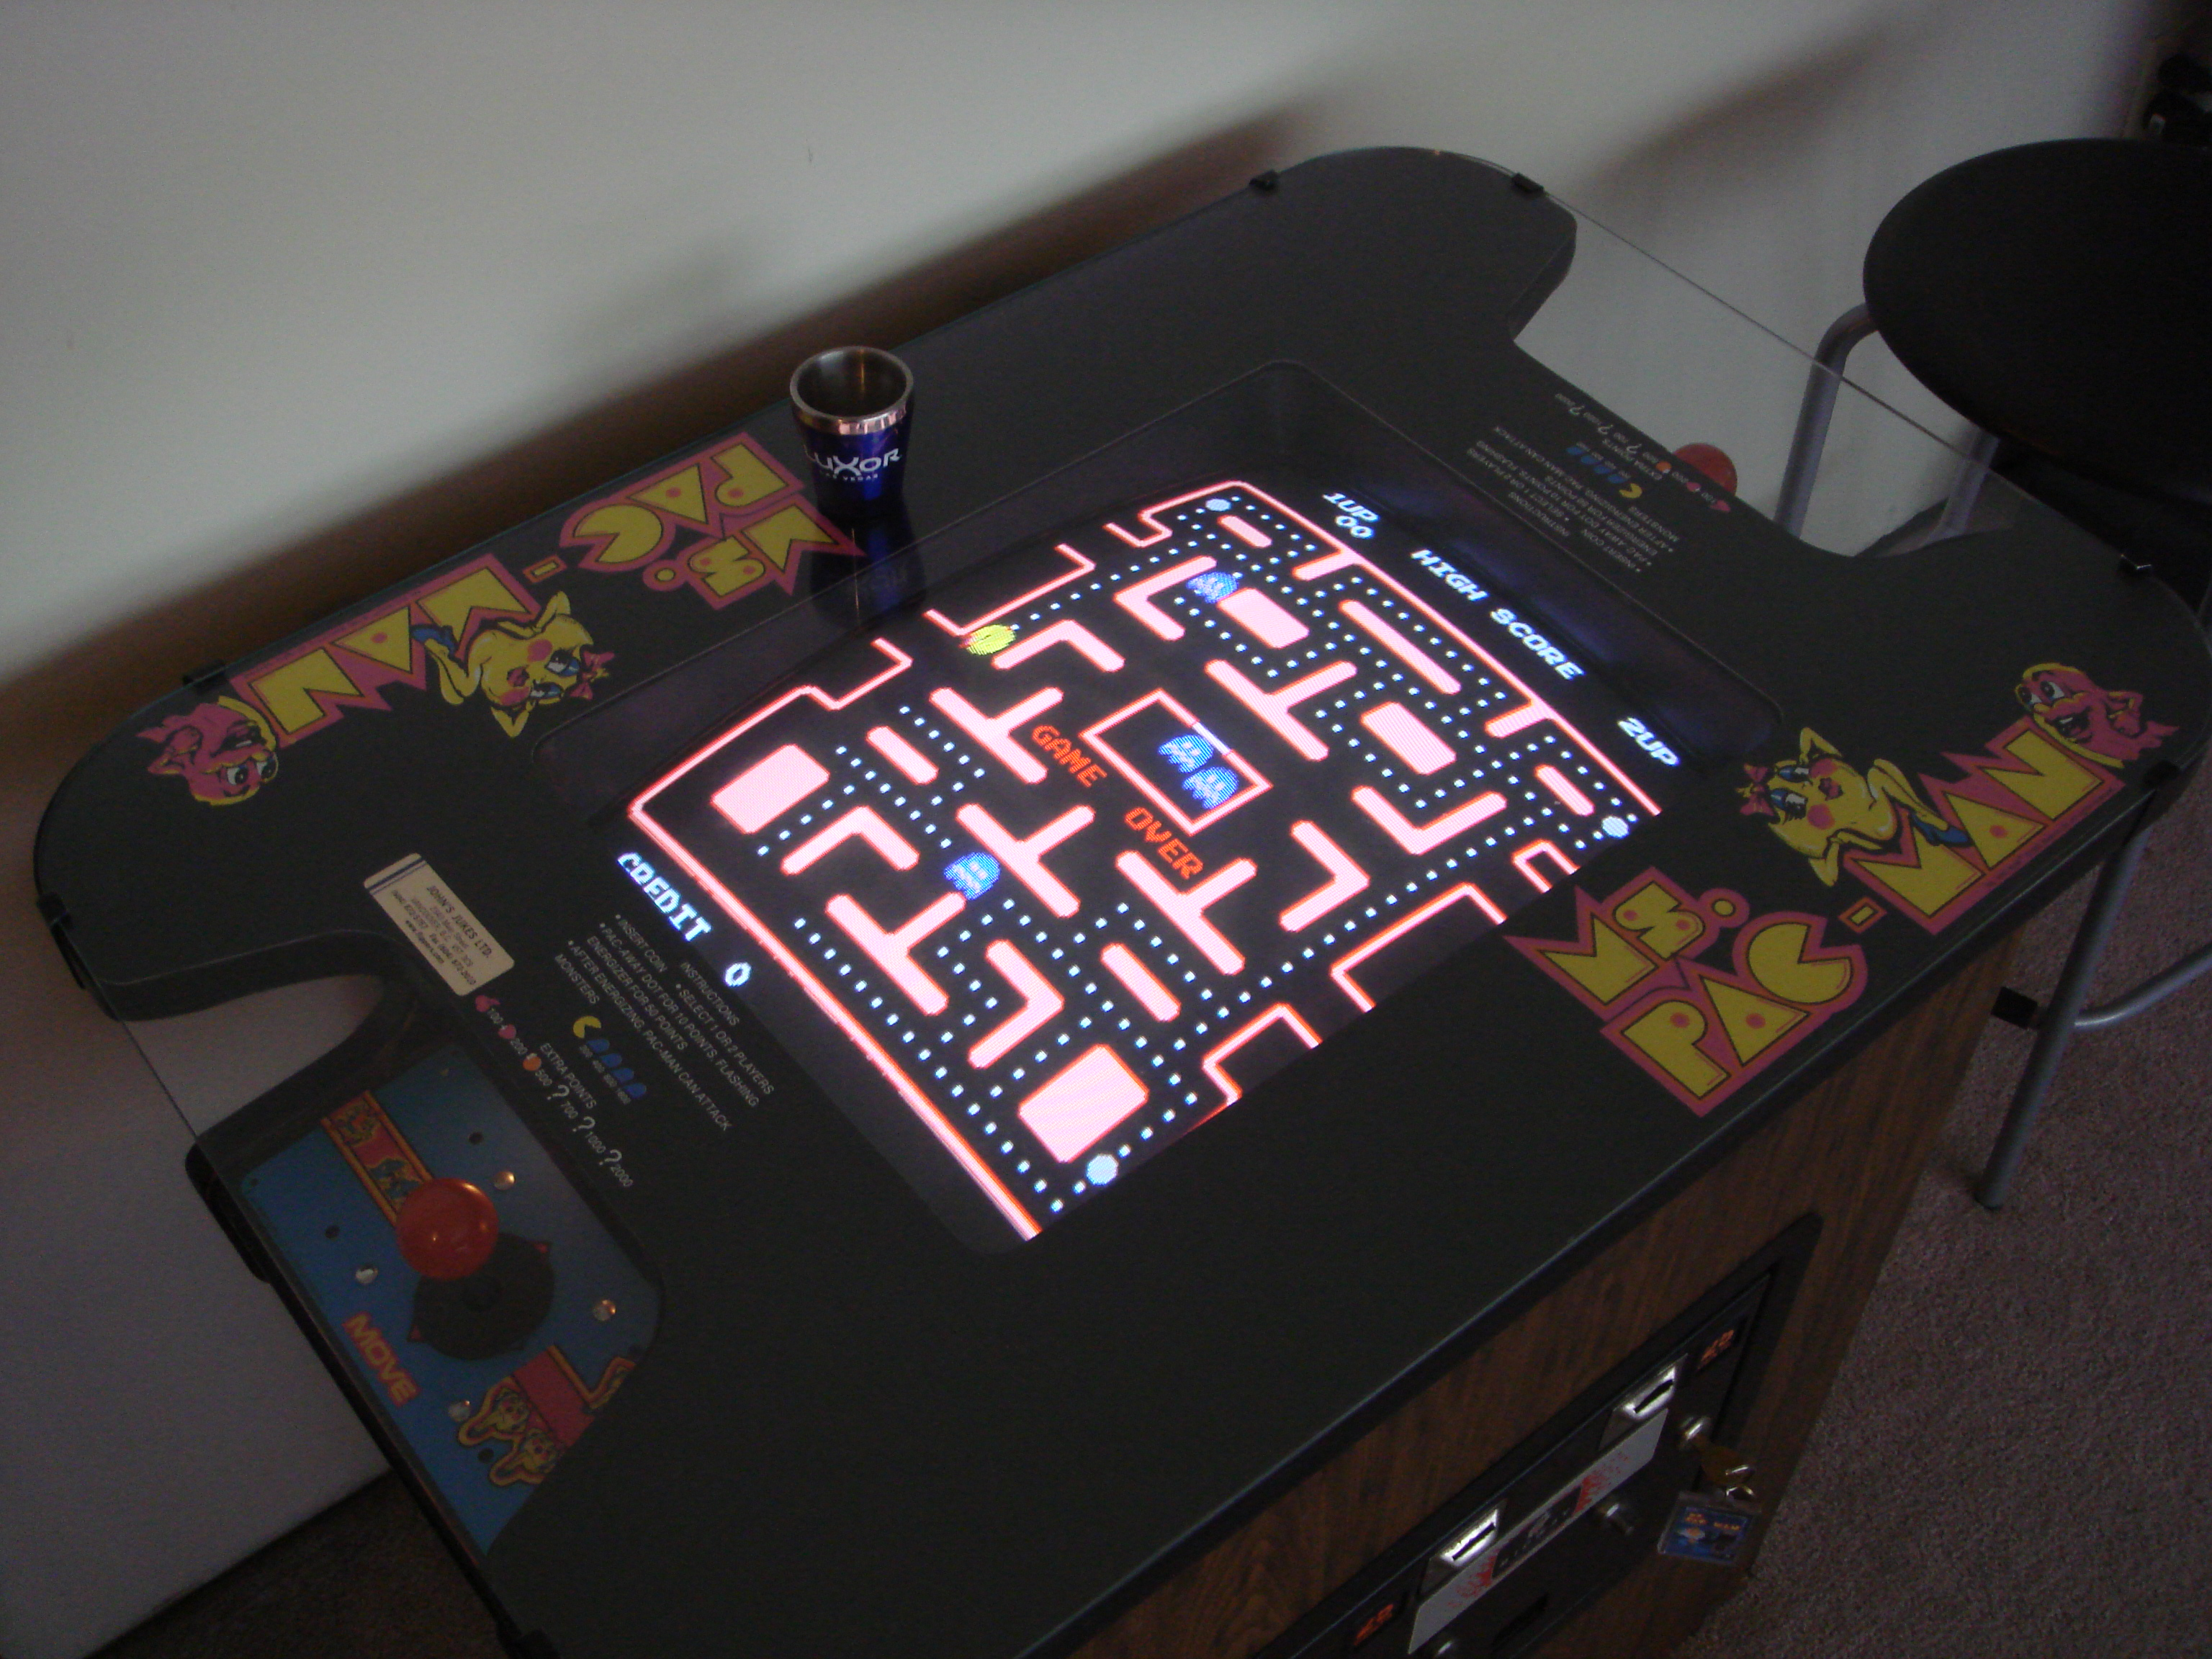 Ms. Pac-Man 123,040 points